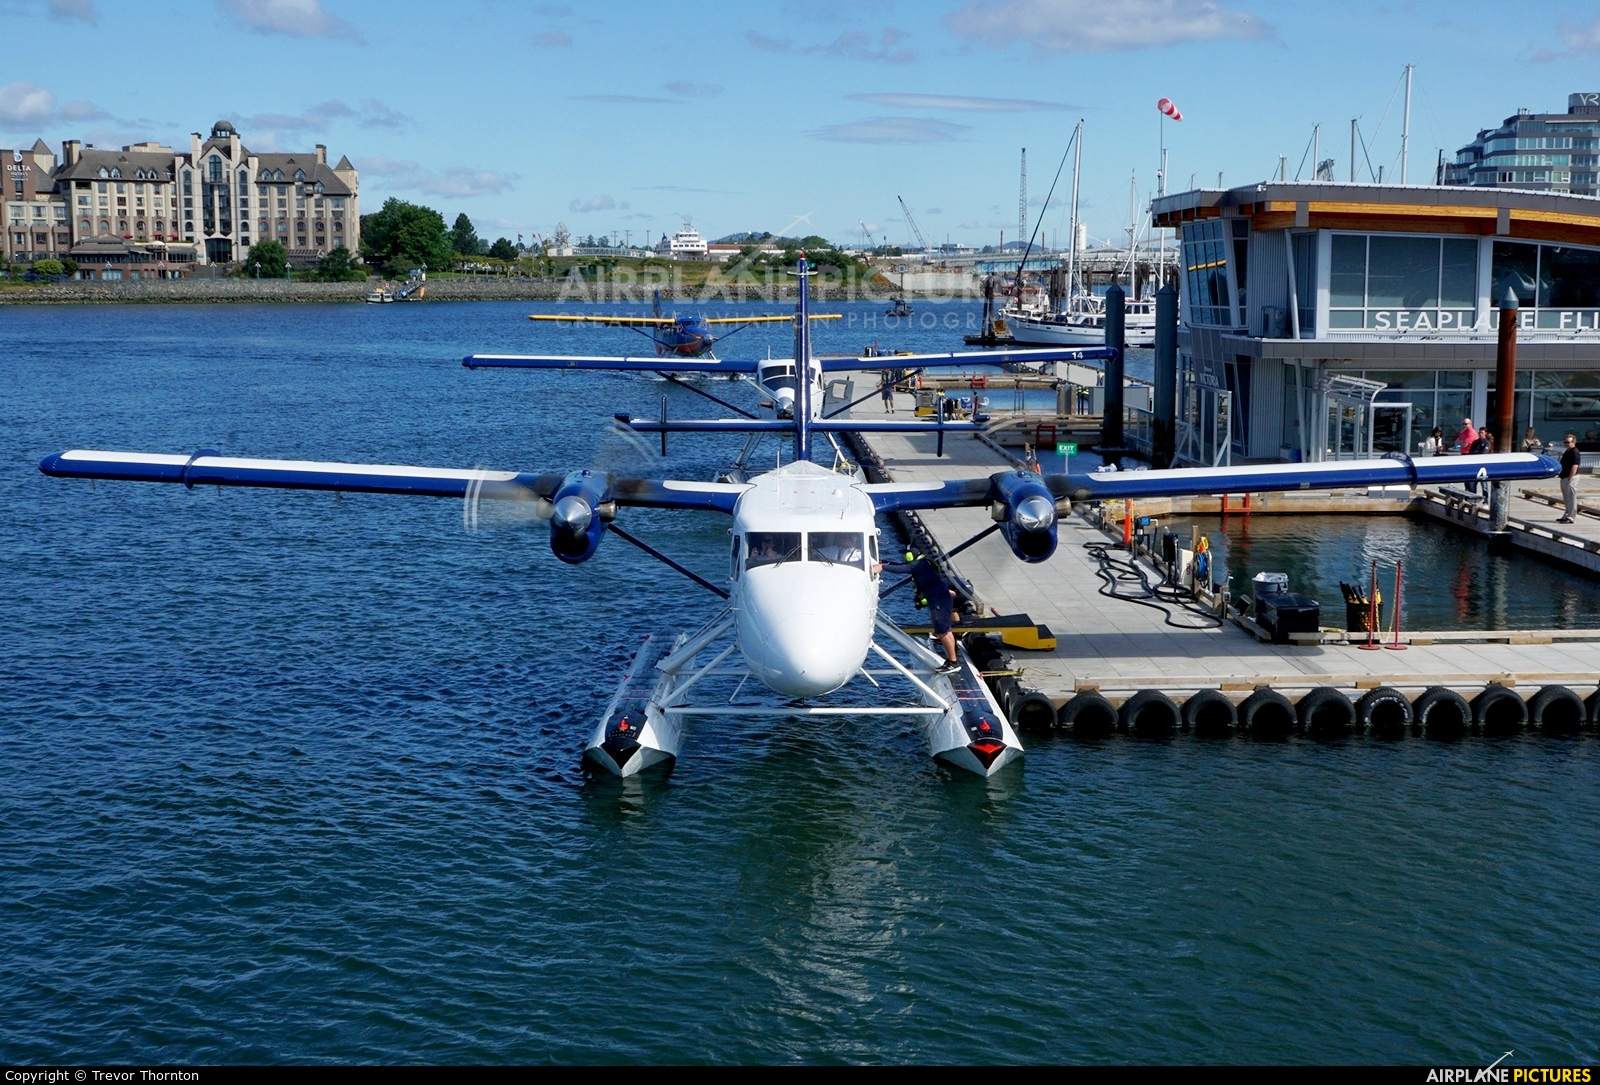 West Coast Air C-FGQH aircraft at Victoria Harbour, BC